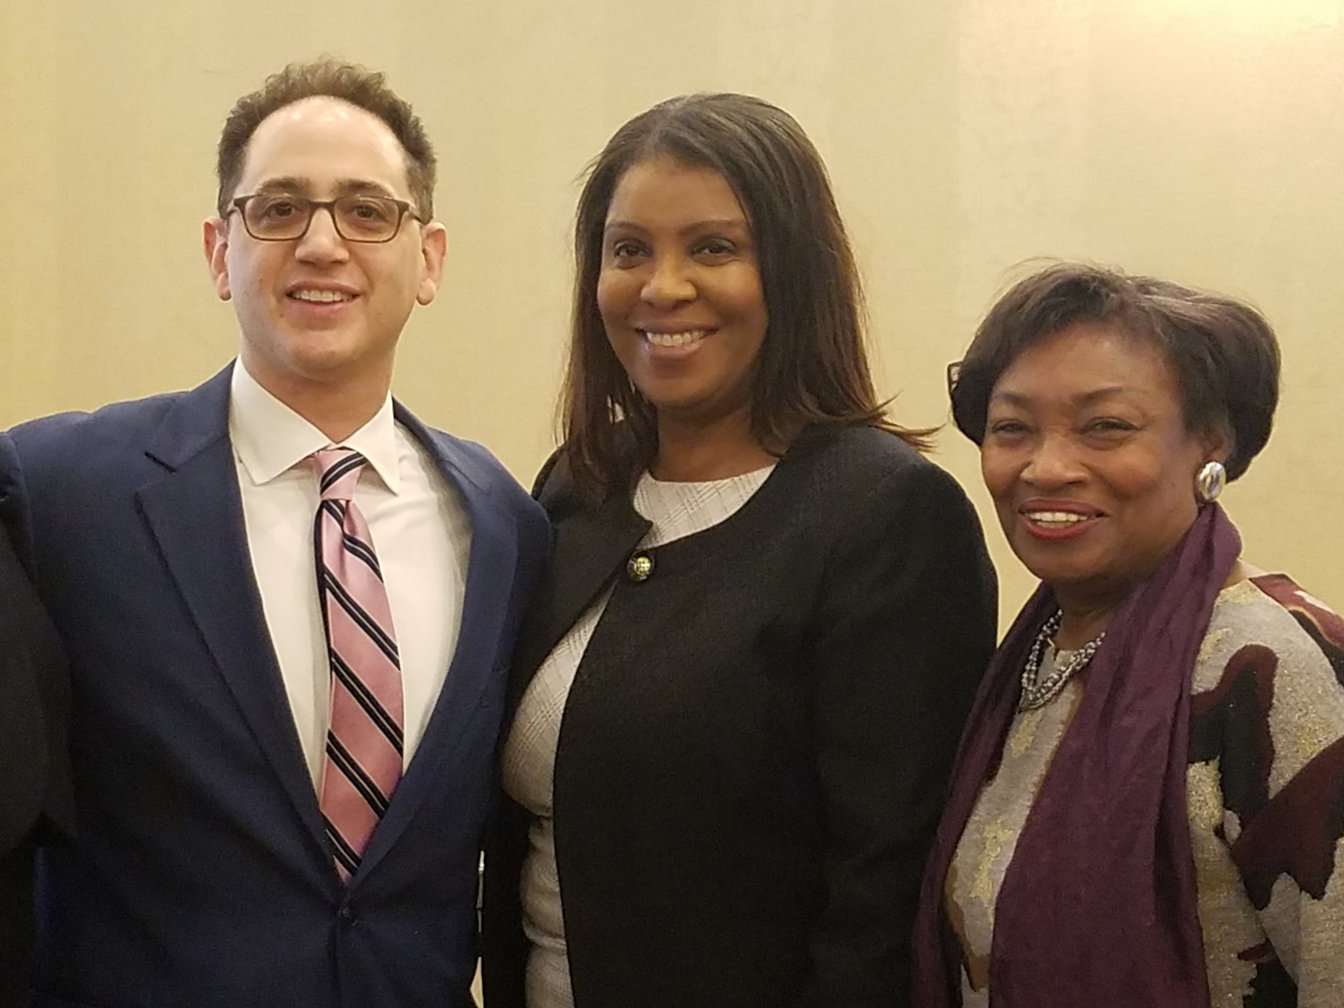 Attorney General Tish James & Majority Leader Sen. Andrea Stewart-Cousins